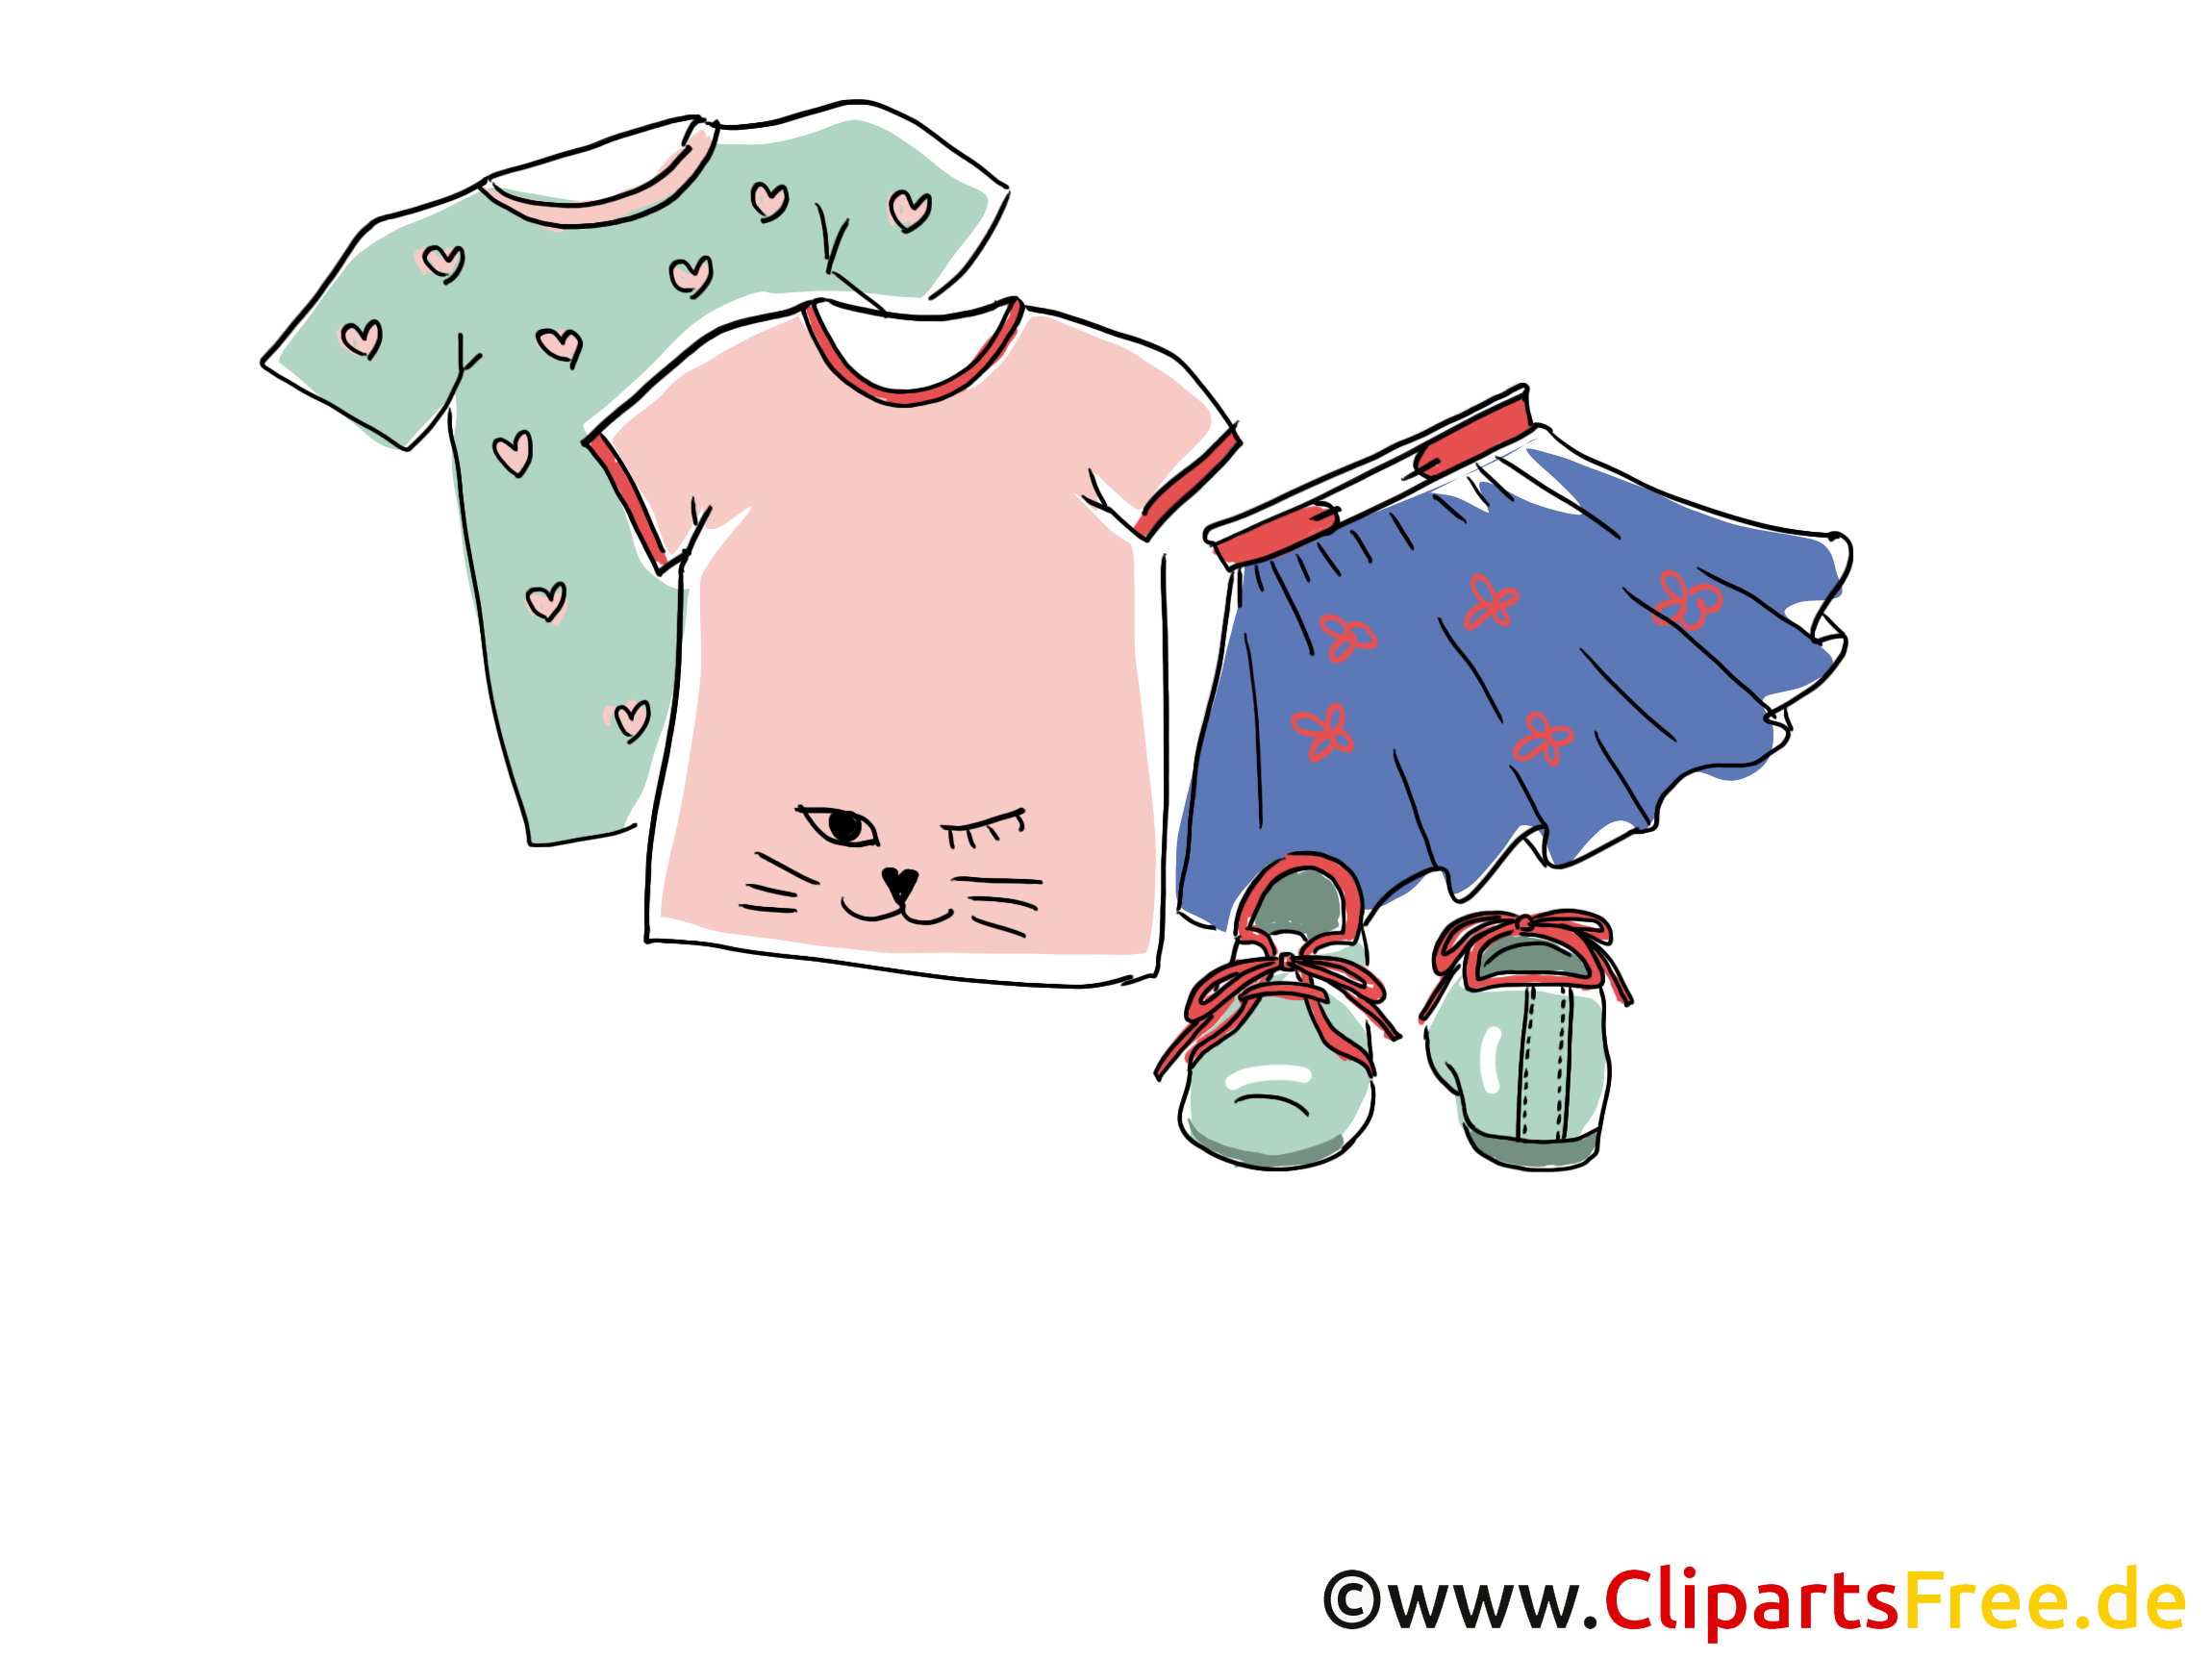 Clipart mode gratuit freeuse download Vêtements petit fille clipart gratuit images - Mode dessin ... freeuse download